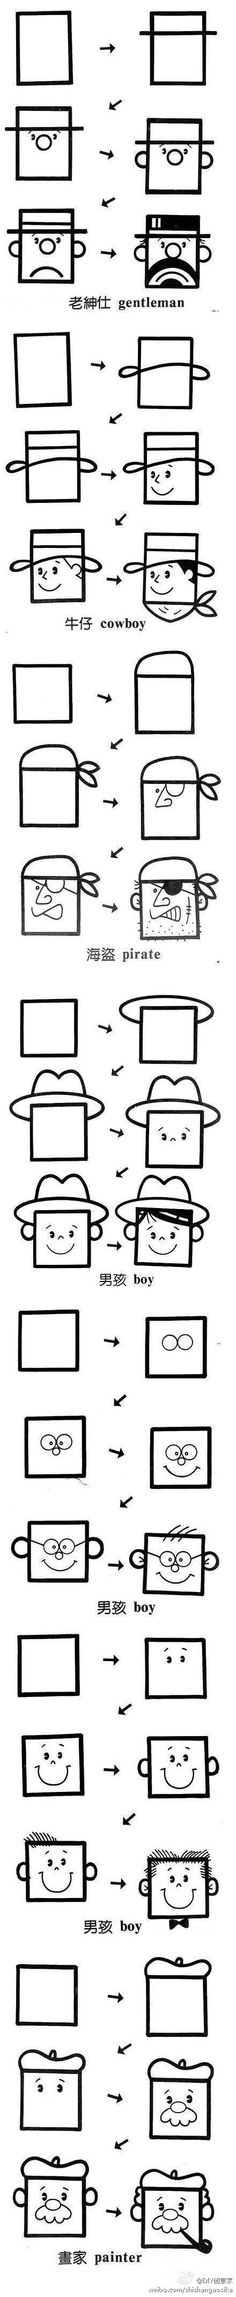 How to draw square faces.